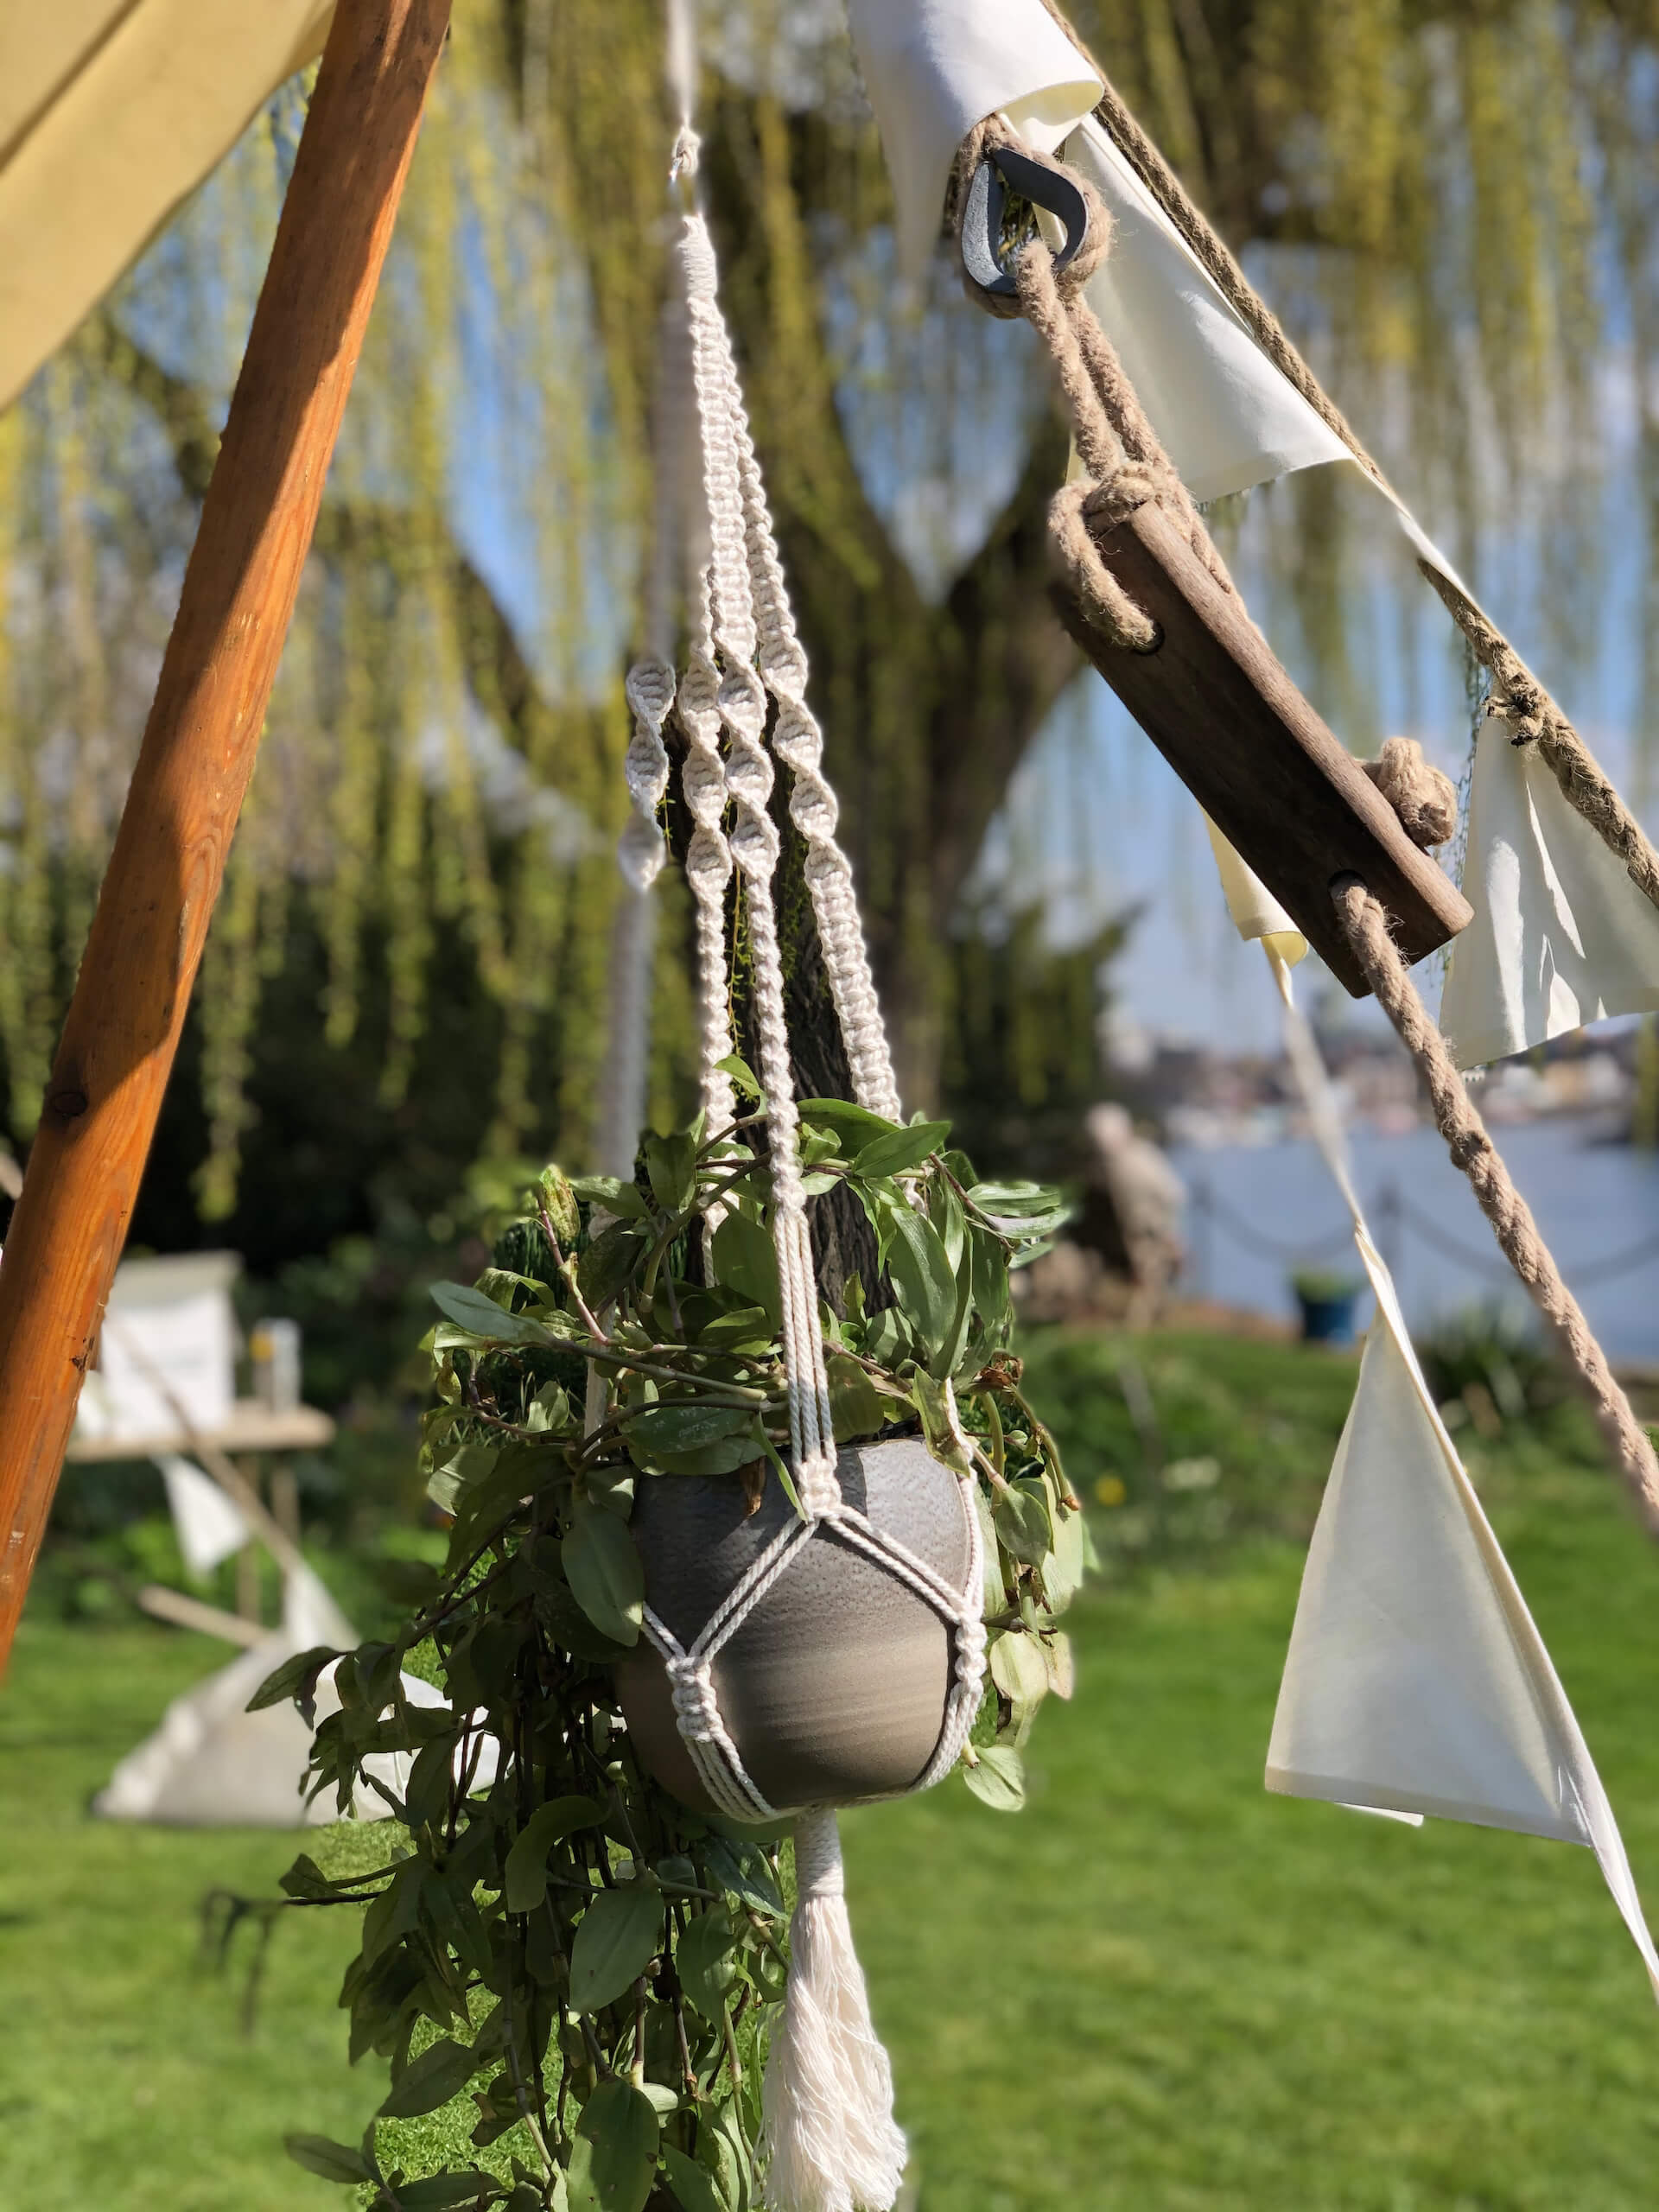 macrame plant hangers make lovely styling accesories on these canvas tents